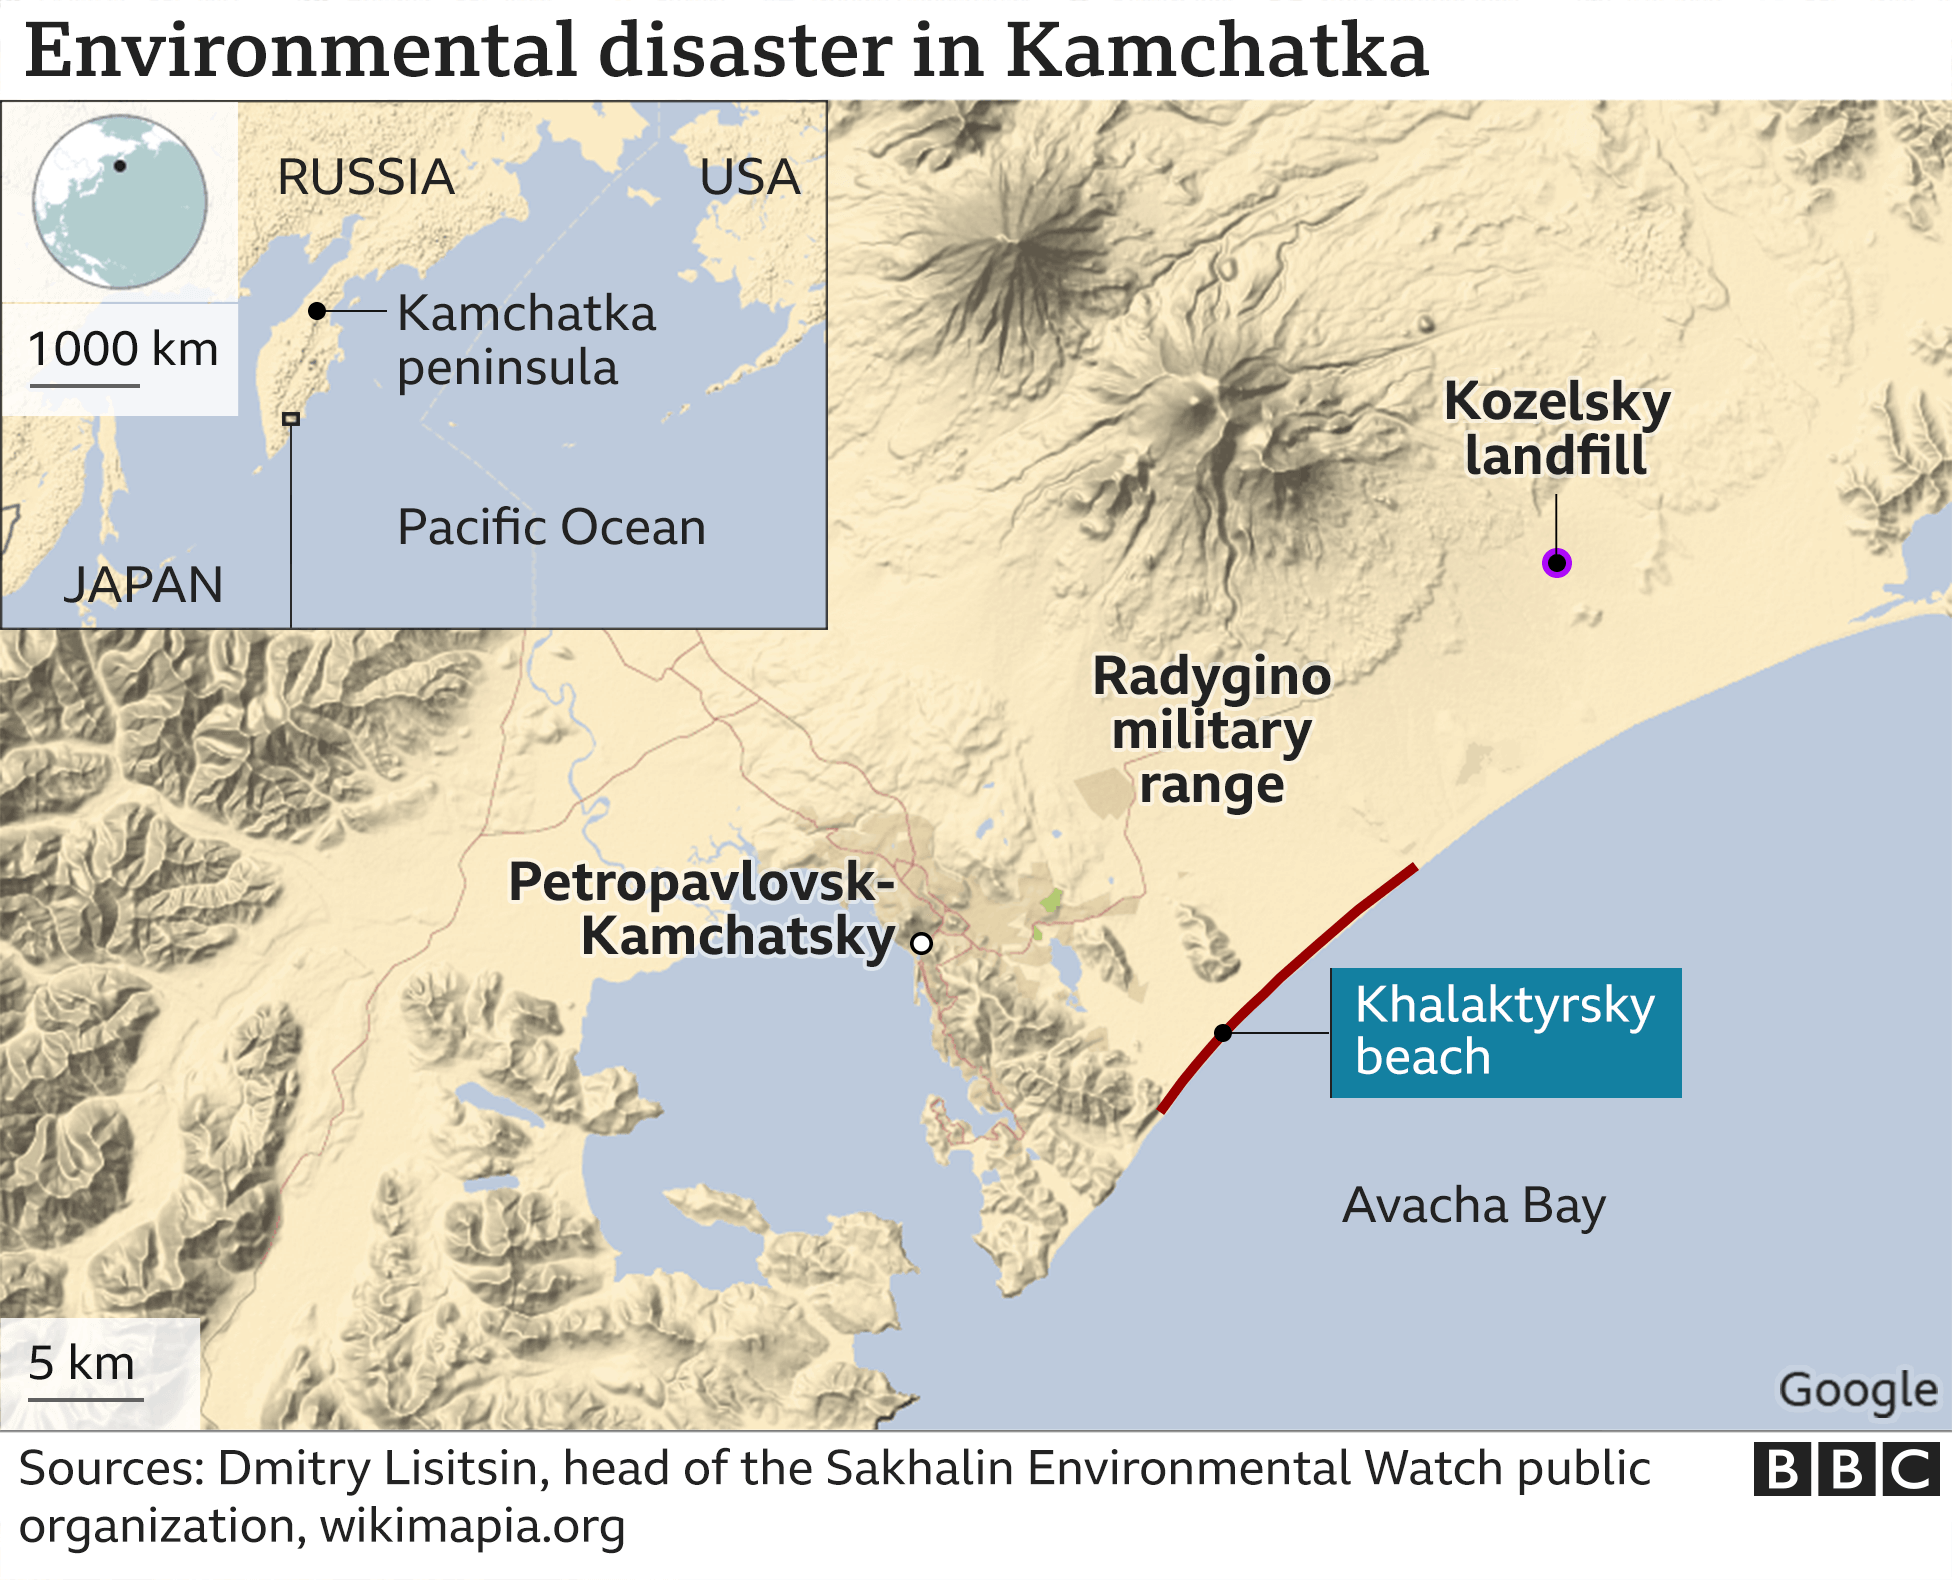 Map showing the location of Kamchatka beach in Russia, where there are reports of major pollution in the ocean.